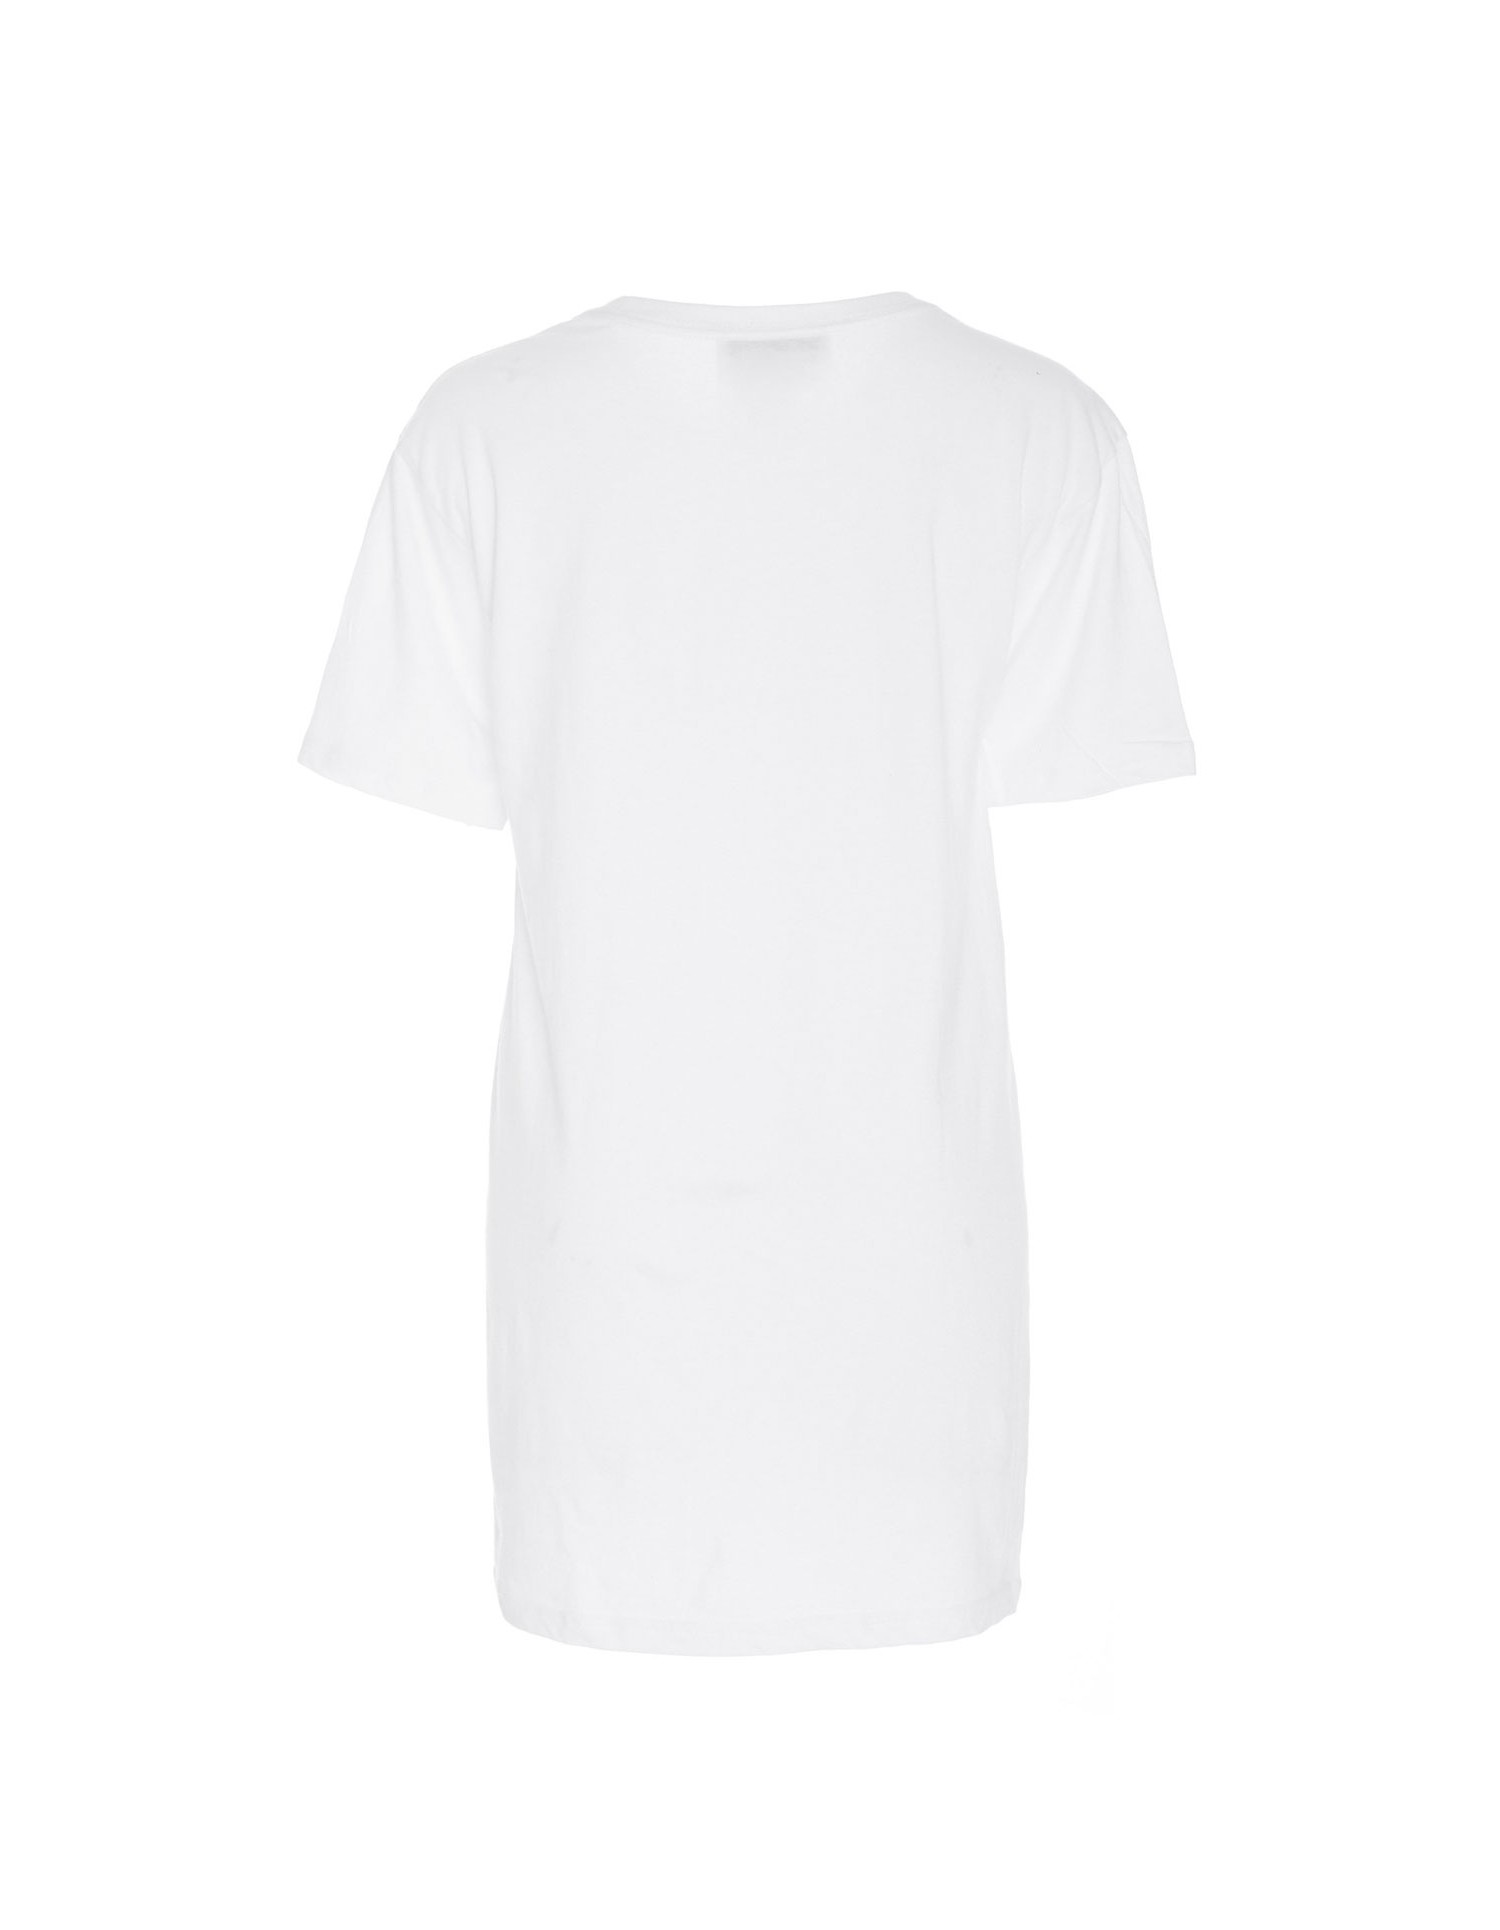 Monse Rope Print Tee in White Back